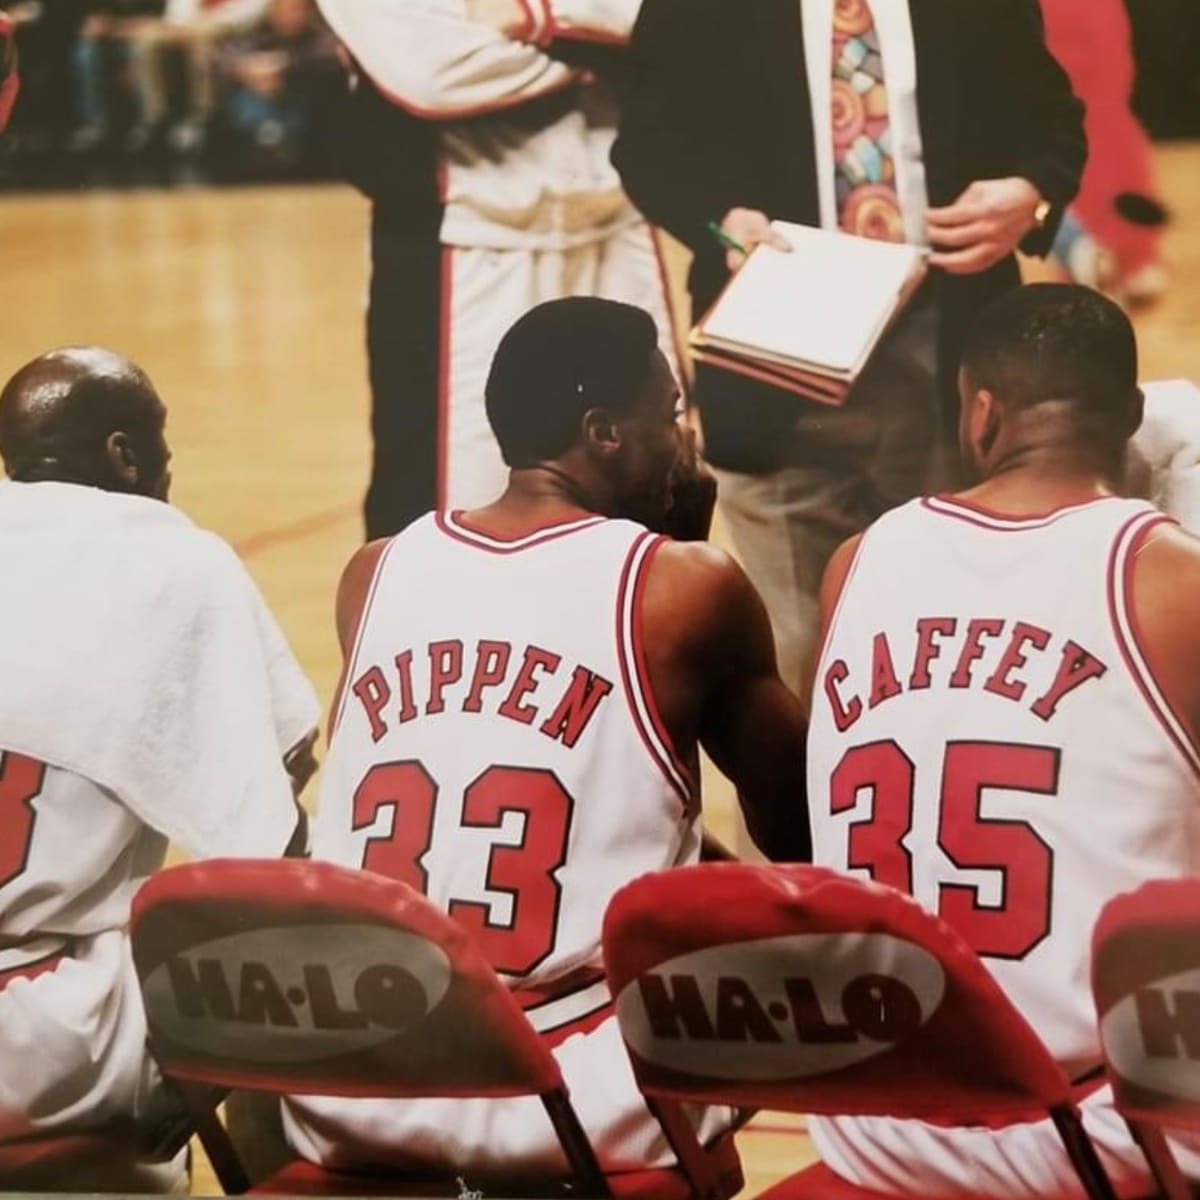 LISTEN: Jason Caffey reacts to Scottie Pippen's comments on Phil Jackson and talks about todays game of basketball